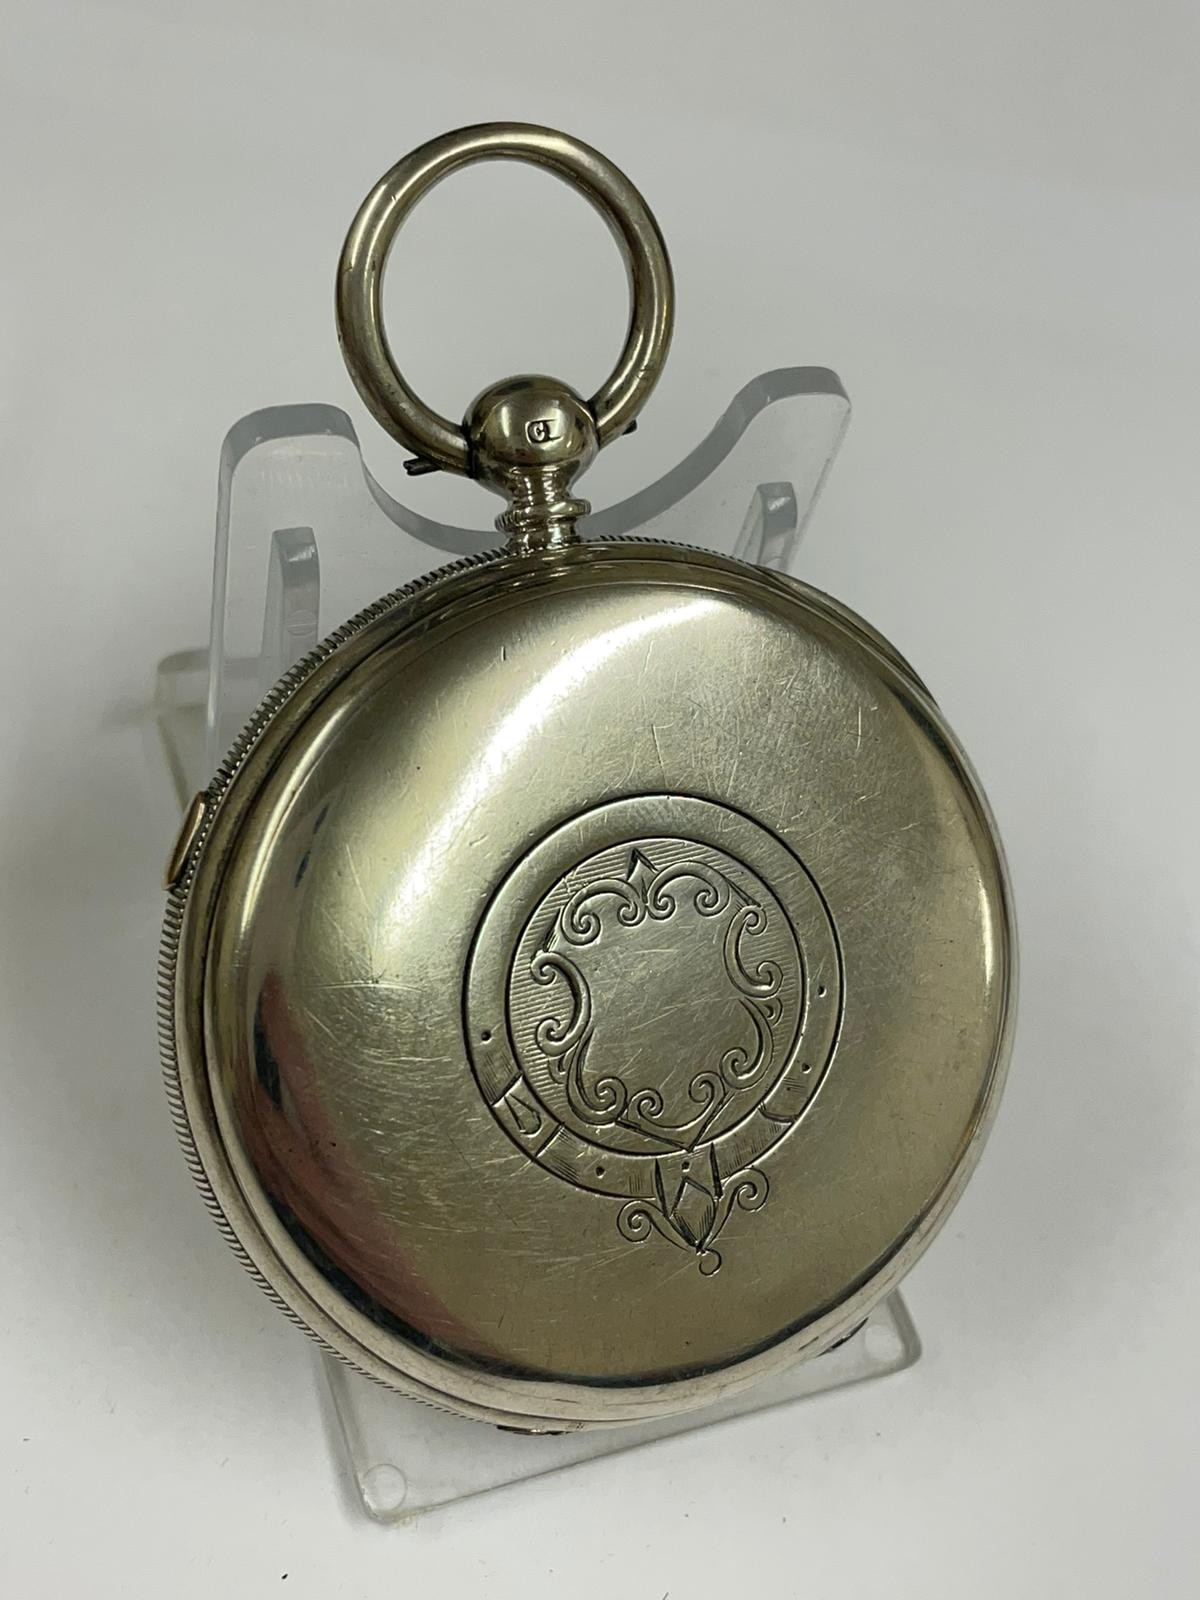 Antique Large silver stop seconds chronograph pocket watch J Harris & sons London & Manchester , - Image 7 of 10